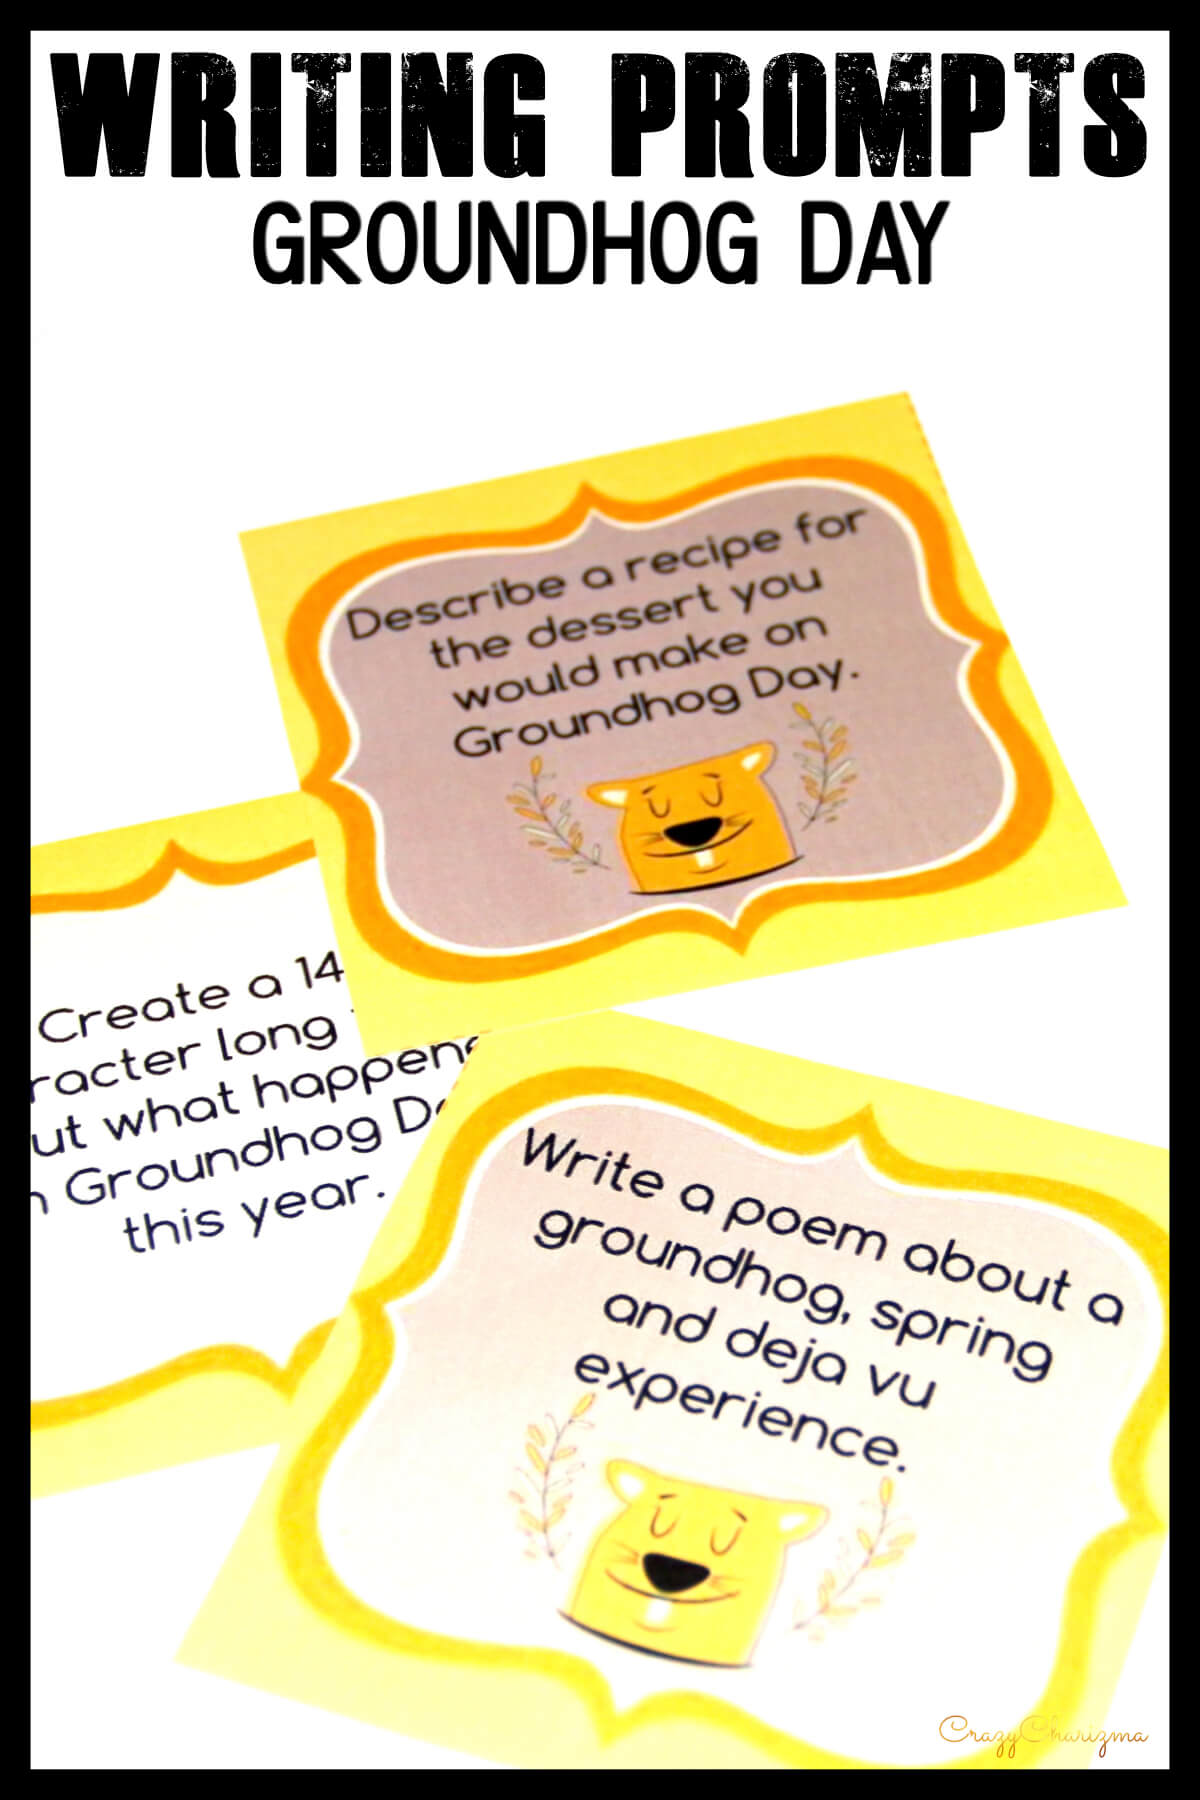 Celebrate Groundhog Day in your classroom and provide students with writing tasks and ideas. The packet contains narrative, informational and opinion writing prompts for teens. The prompts can be used as Writing Centers, as well as with adults during ESL lessons.